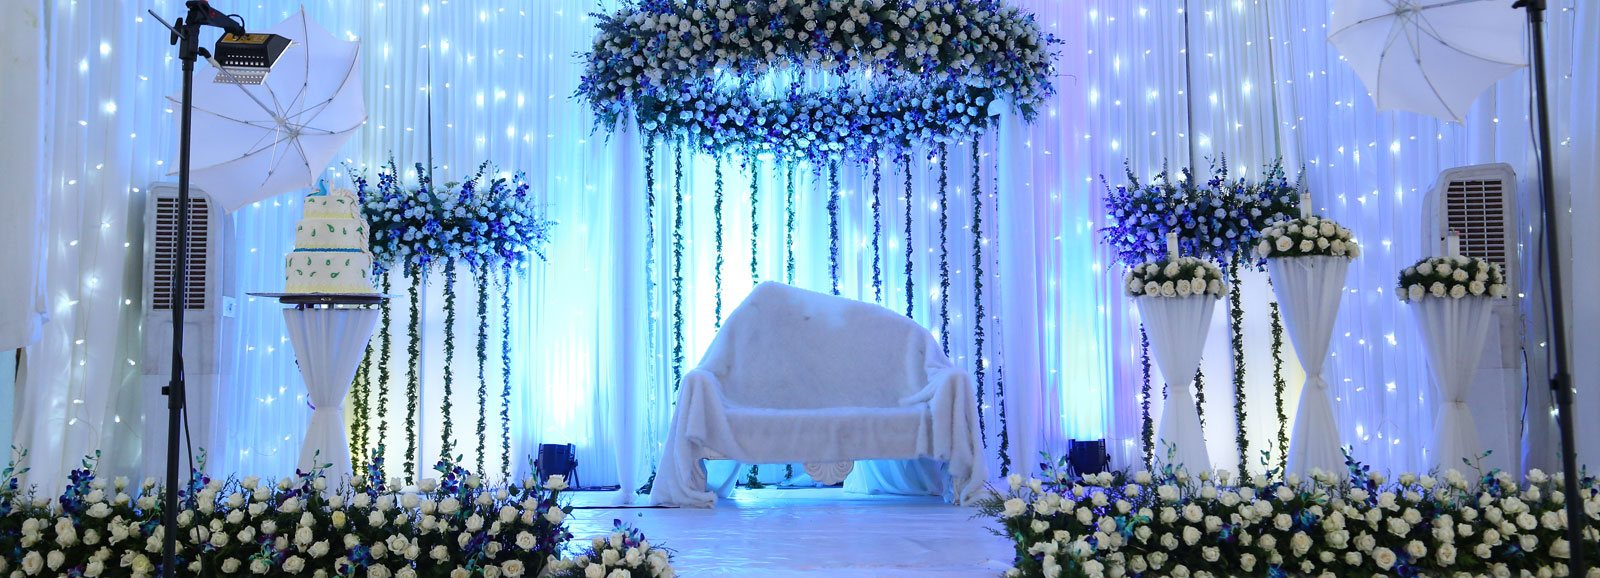 Stage Decoration Kottayam : Stage decorators in kottayam wedding